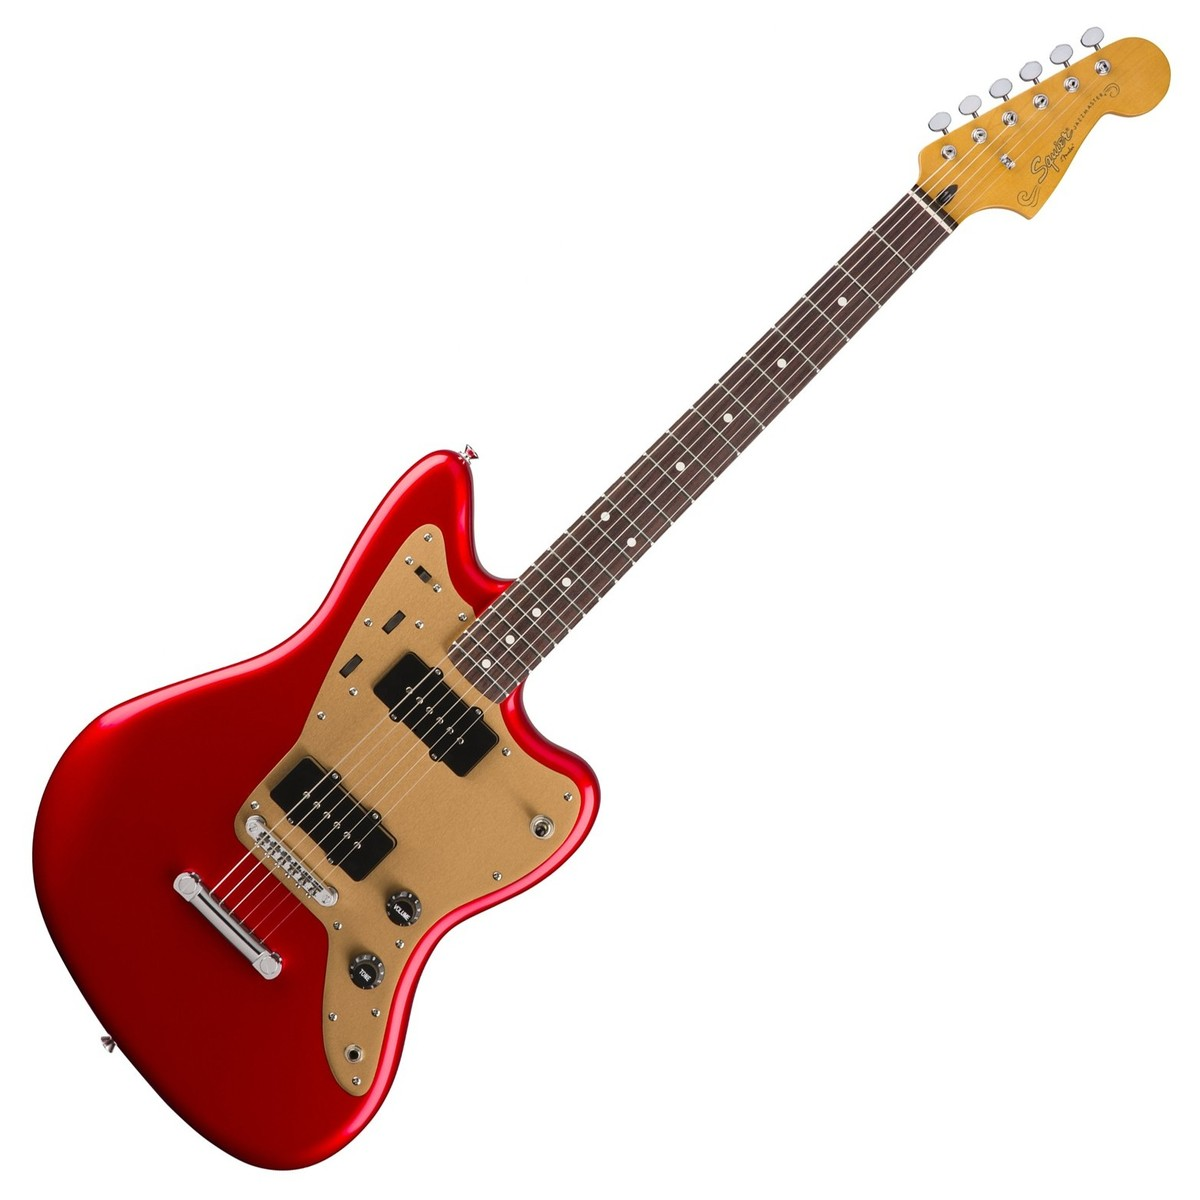 squier by fender deluxe jazzmaster st candy apple red at. Black Bedroom Furniture Sets. Home Design Ideas